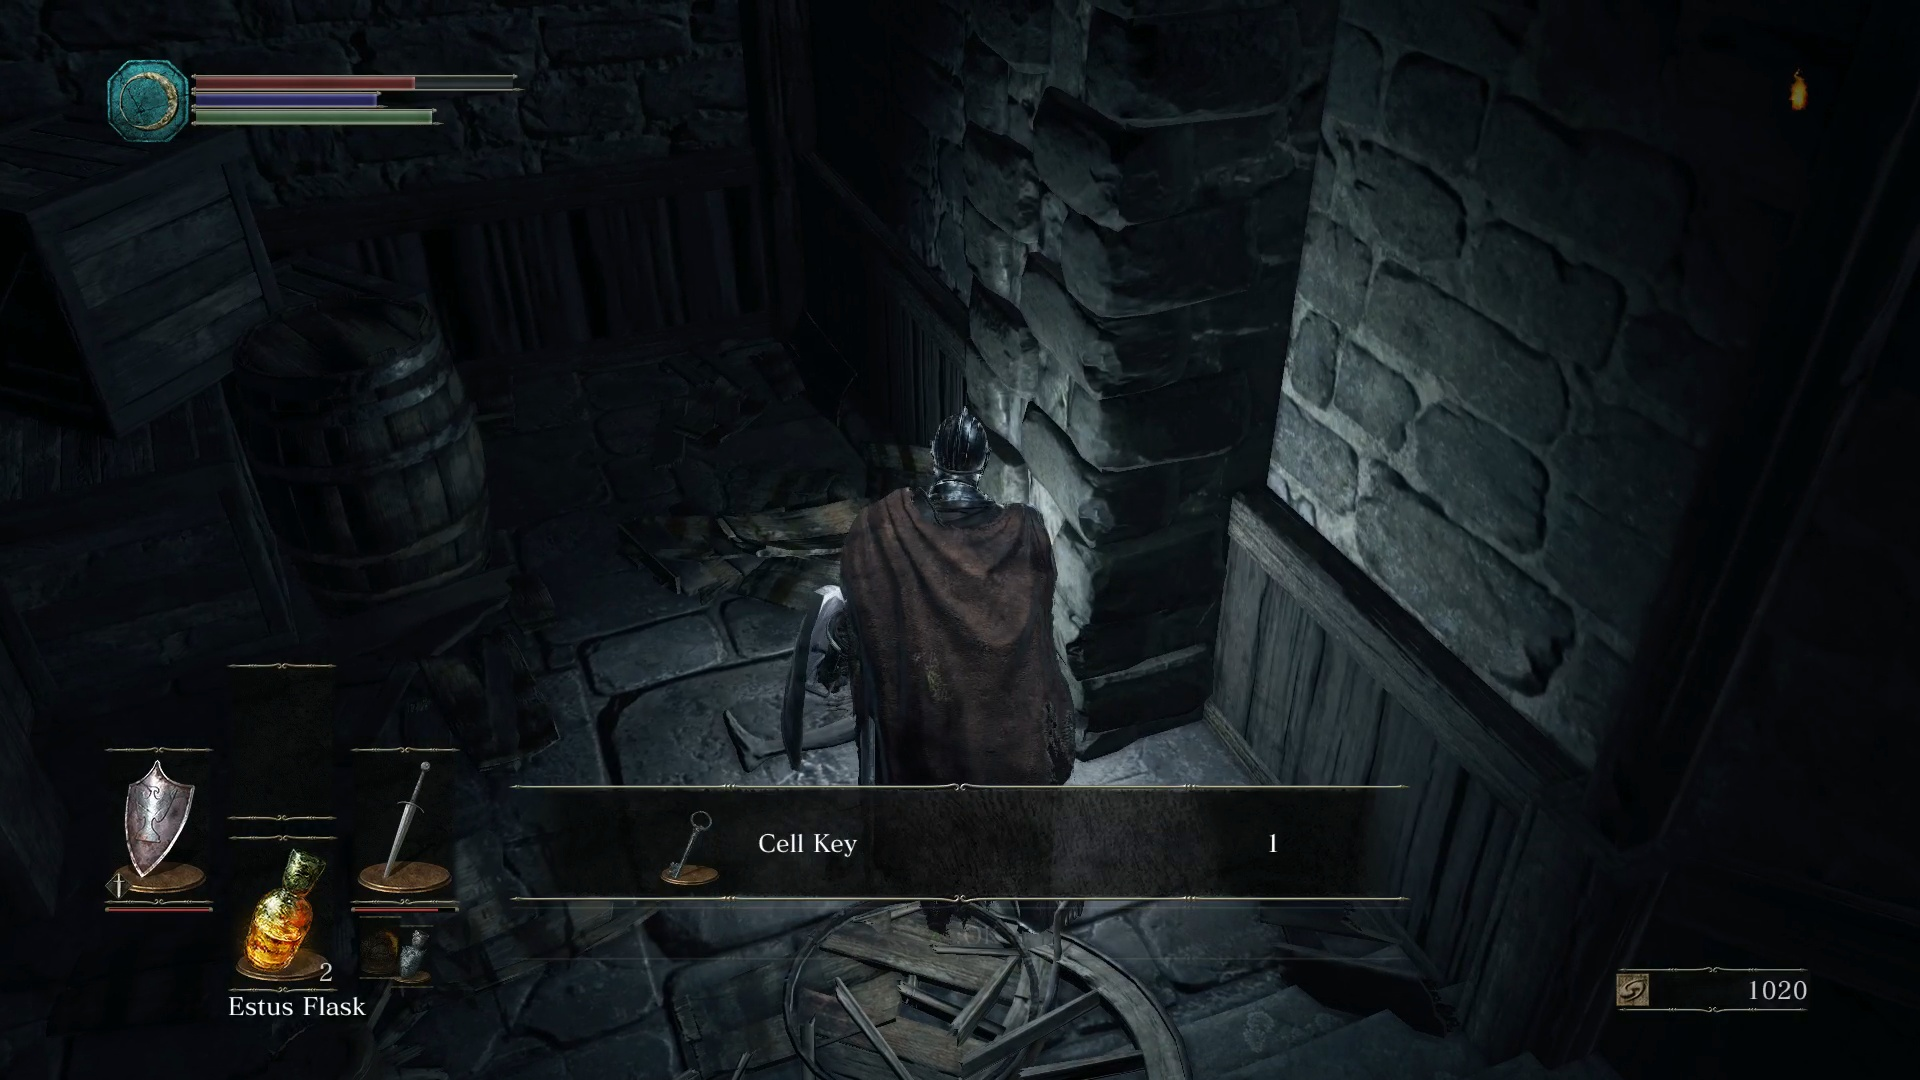 Dark Souls 3 How to Find the Cell Key and Free Greirat